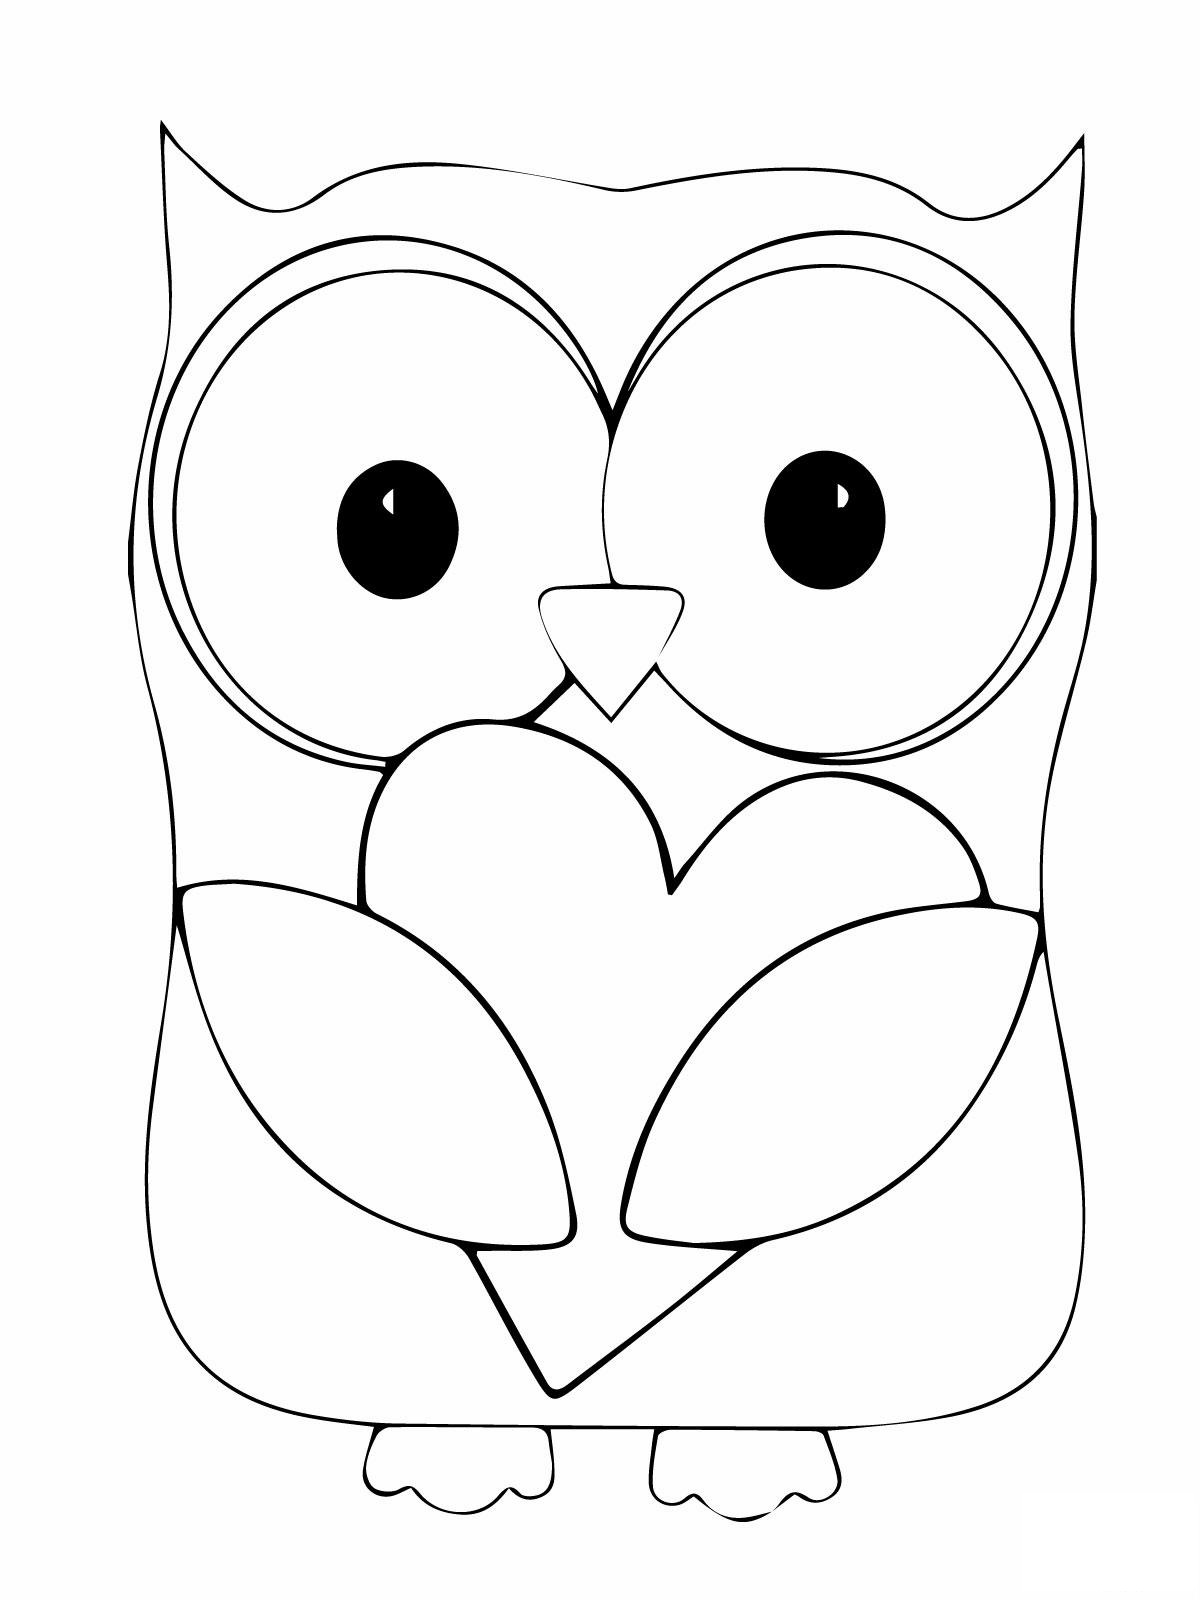 owl print out coloring pages owl coloring pages print free printable cute owl coloring out coloring print owl pages